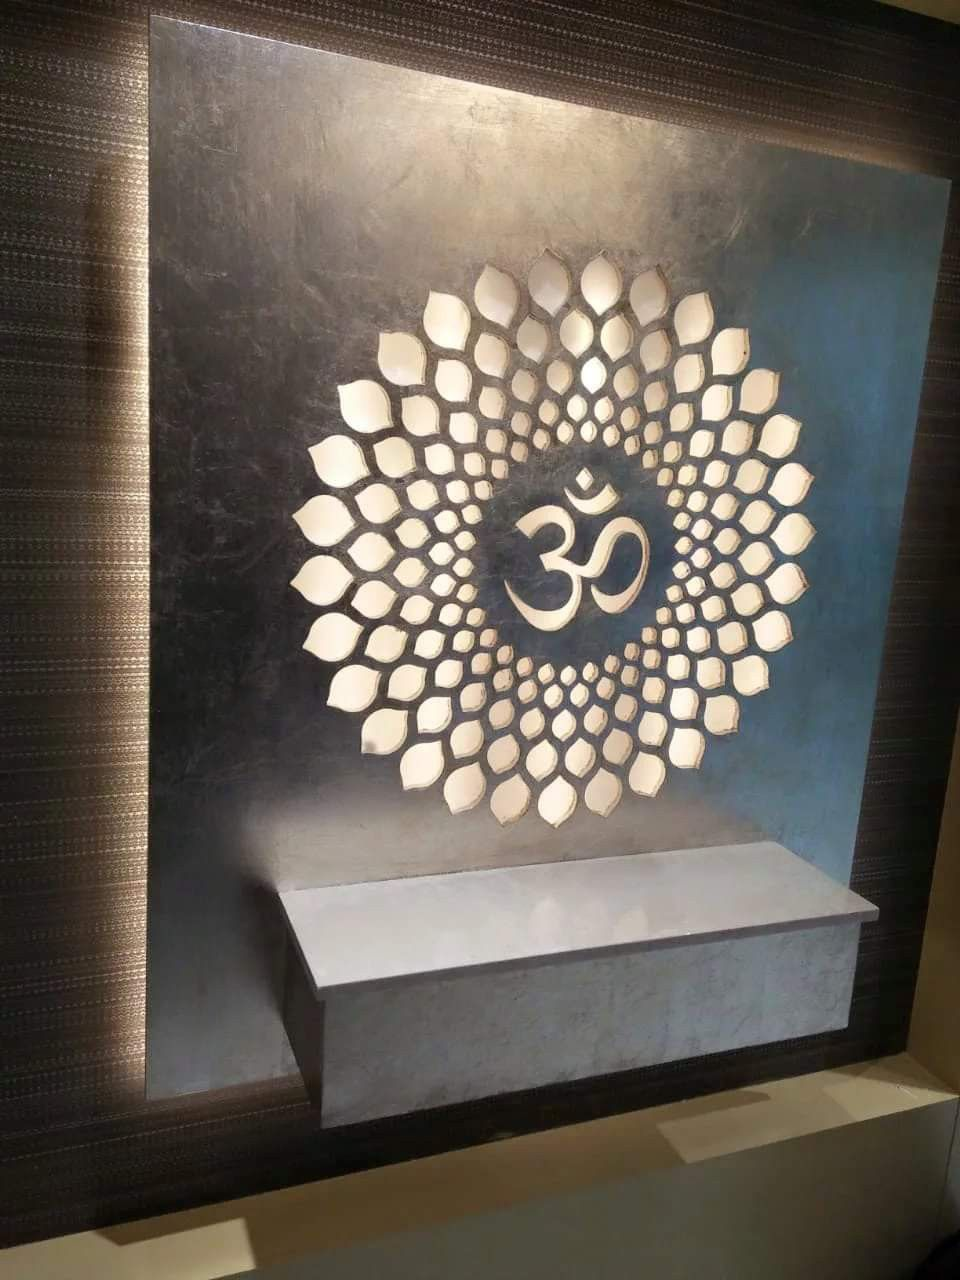 My 3d Room Design: Pin By Harsh Sharma On 3d Cnc In 2019